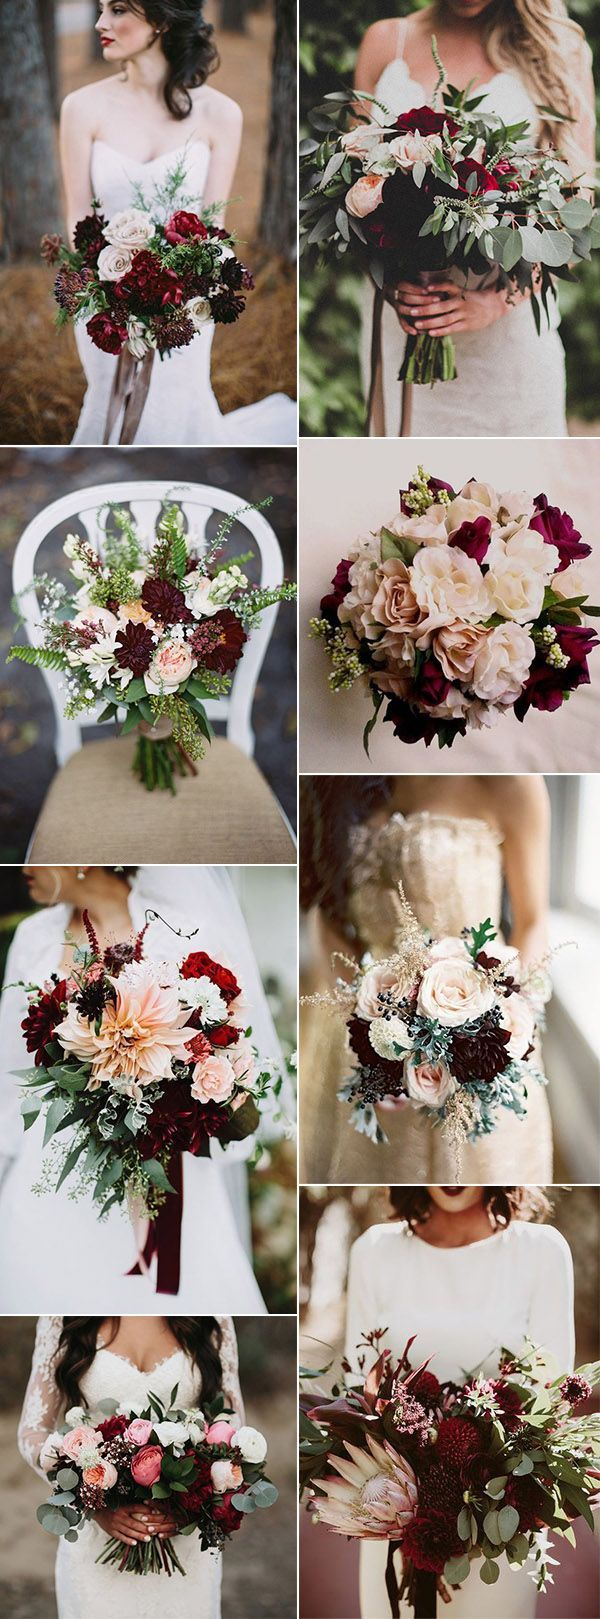 Refined Burgundy and Marsala Wedding Color Ideas for Fall Brides